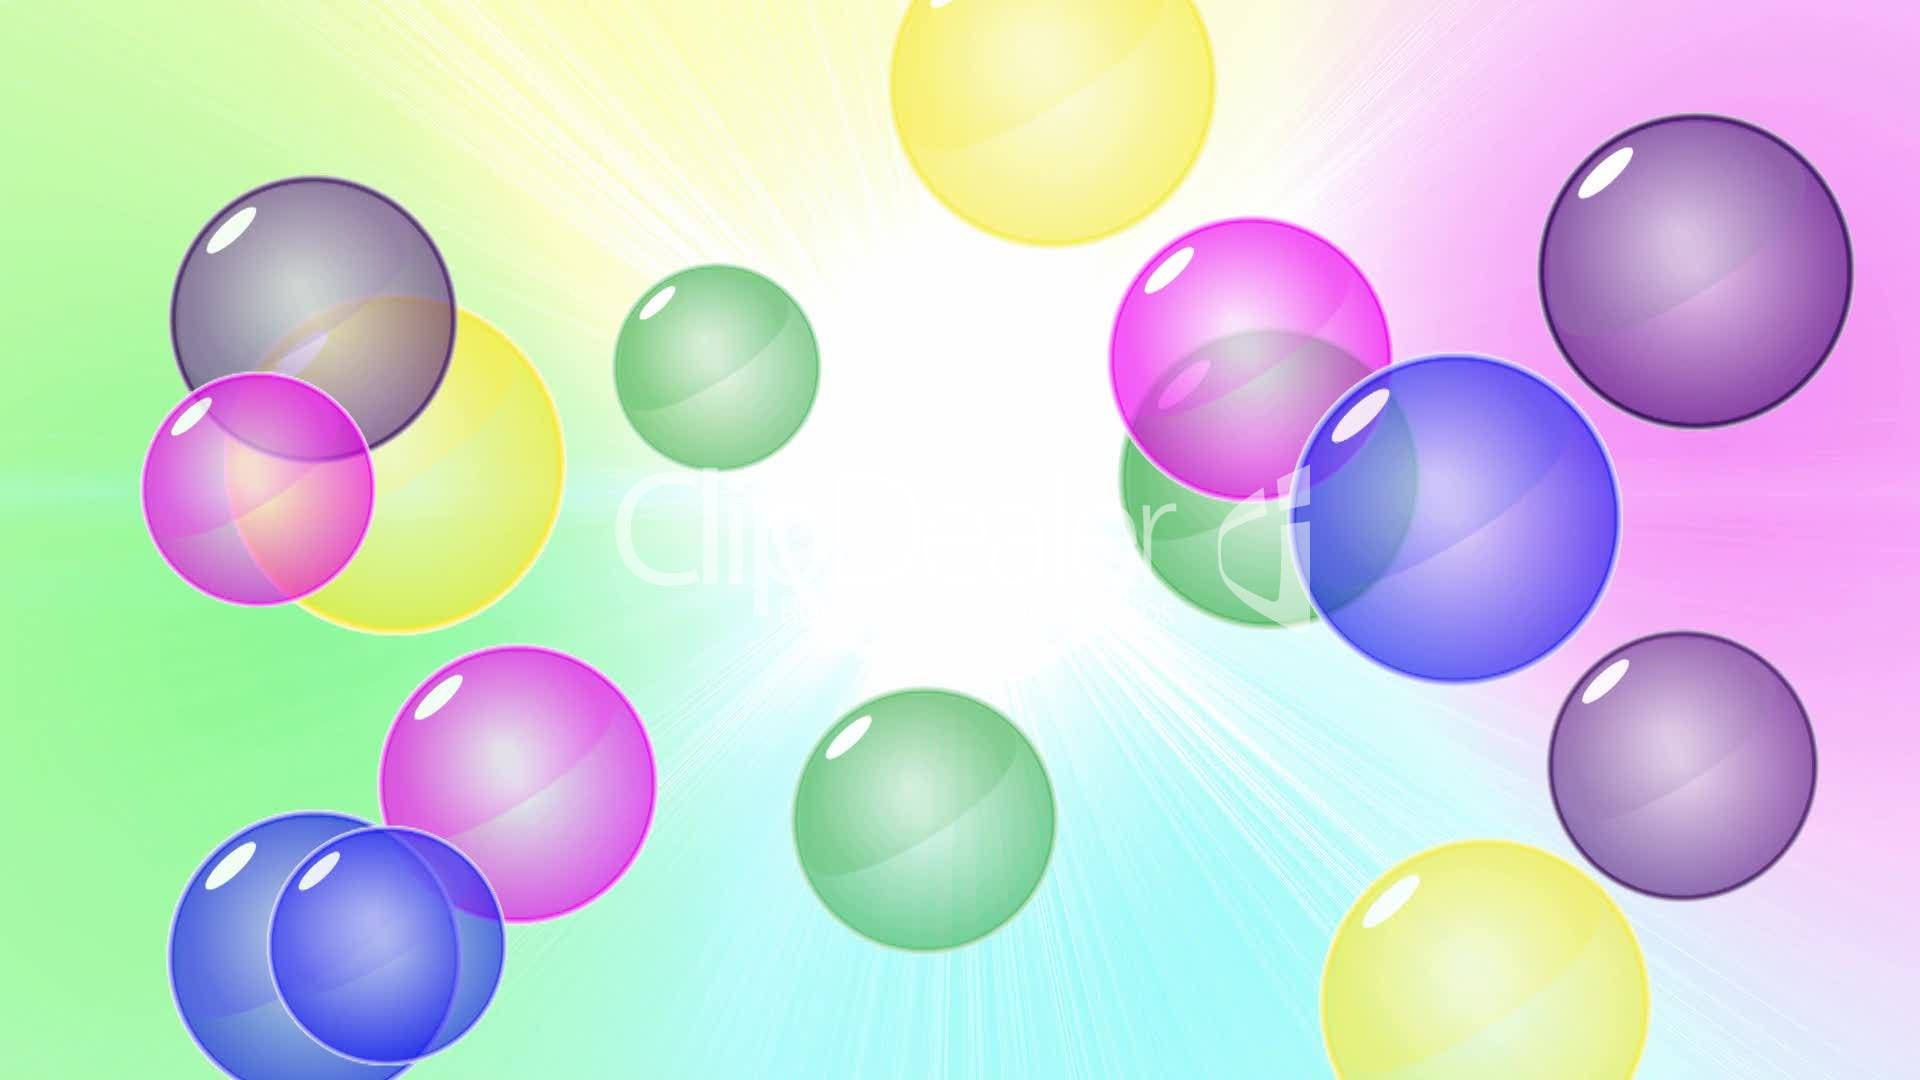 Bubble Background HD1080: Royalty-free video and stock footage